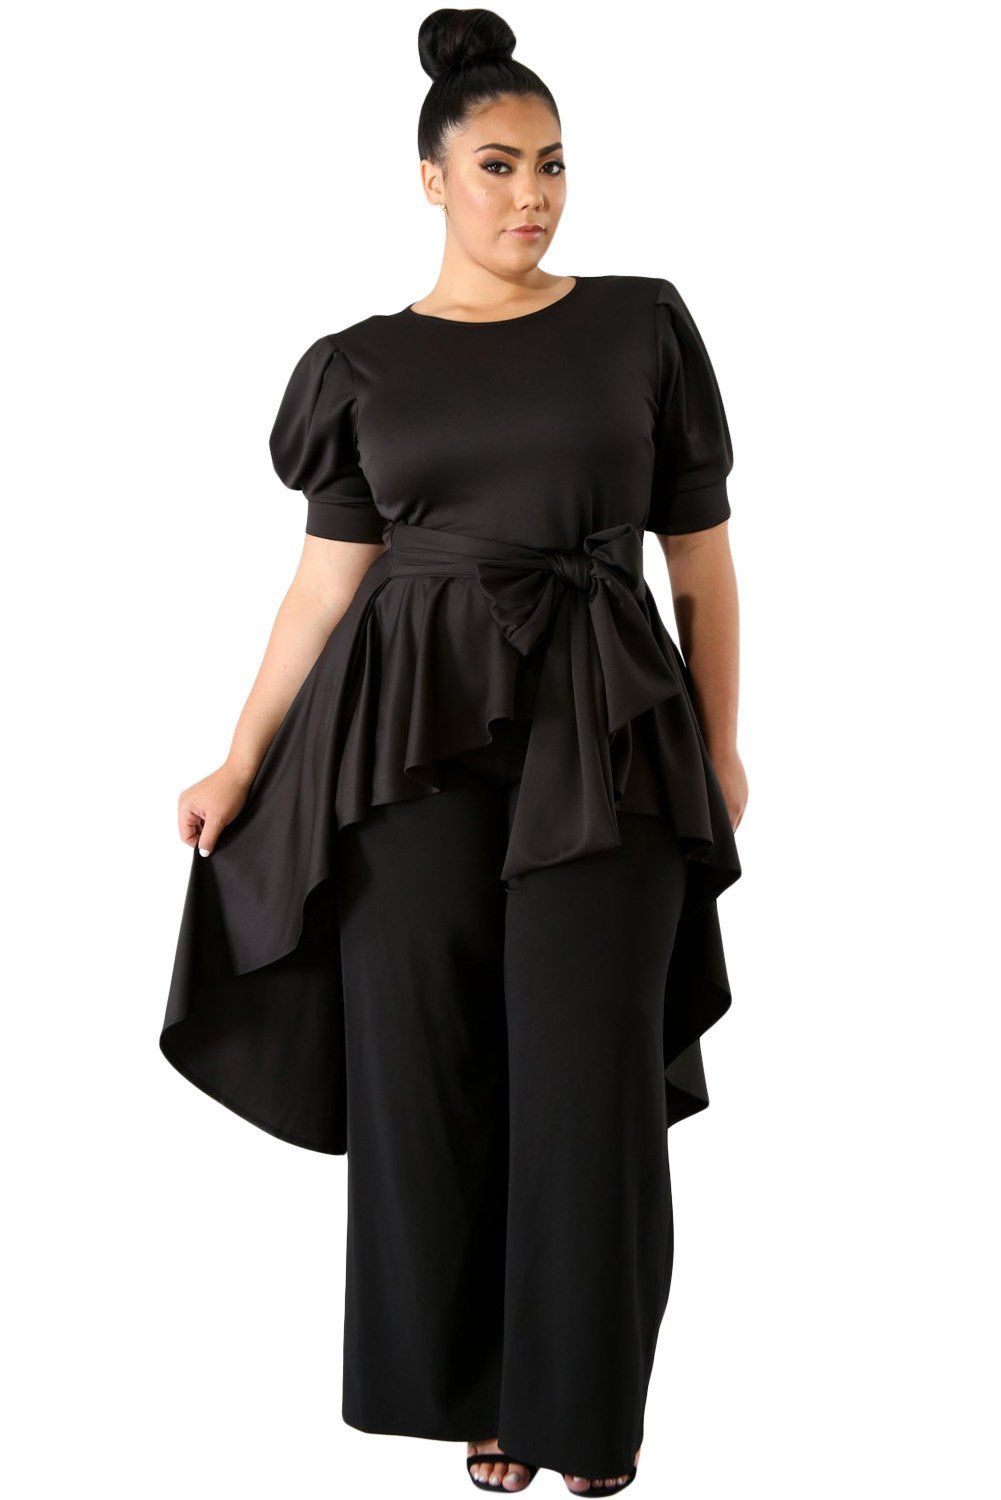 Z Chicloth Black Puff Long Tail Plus Size Top